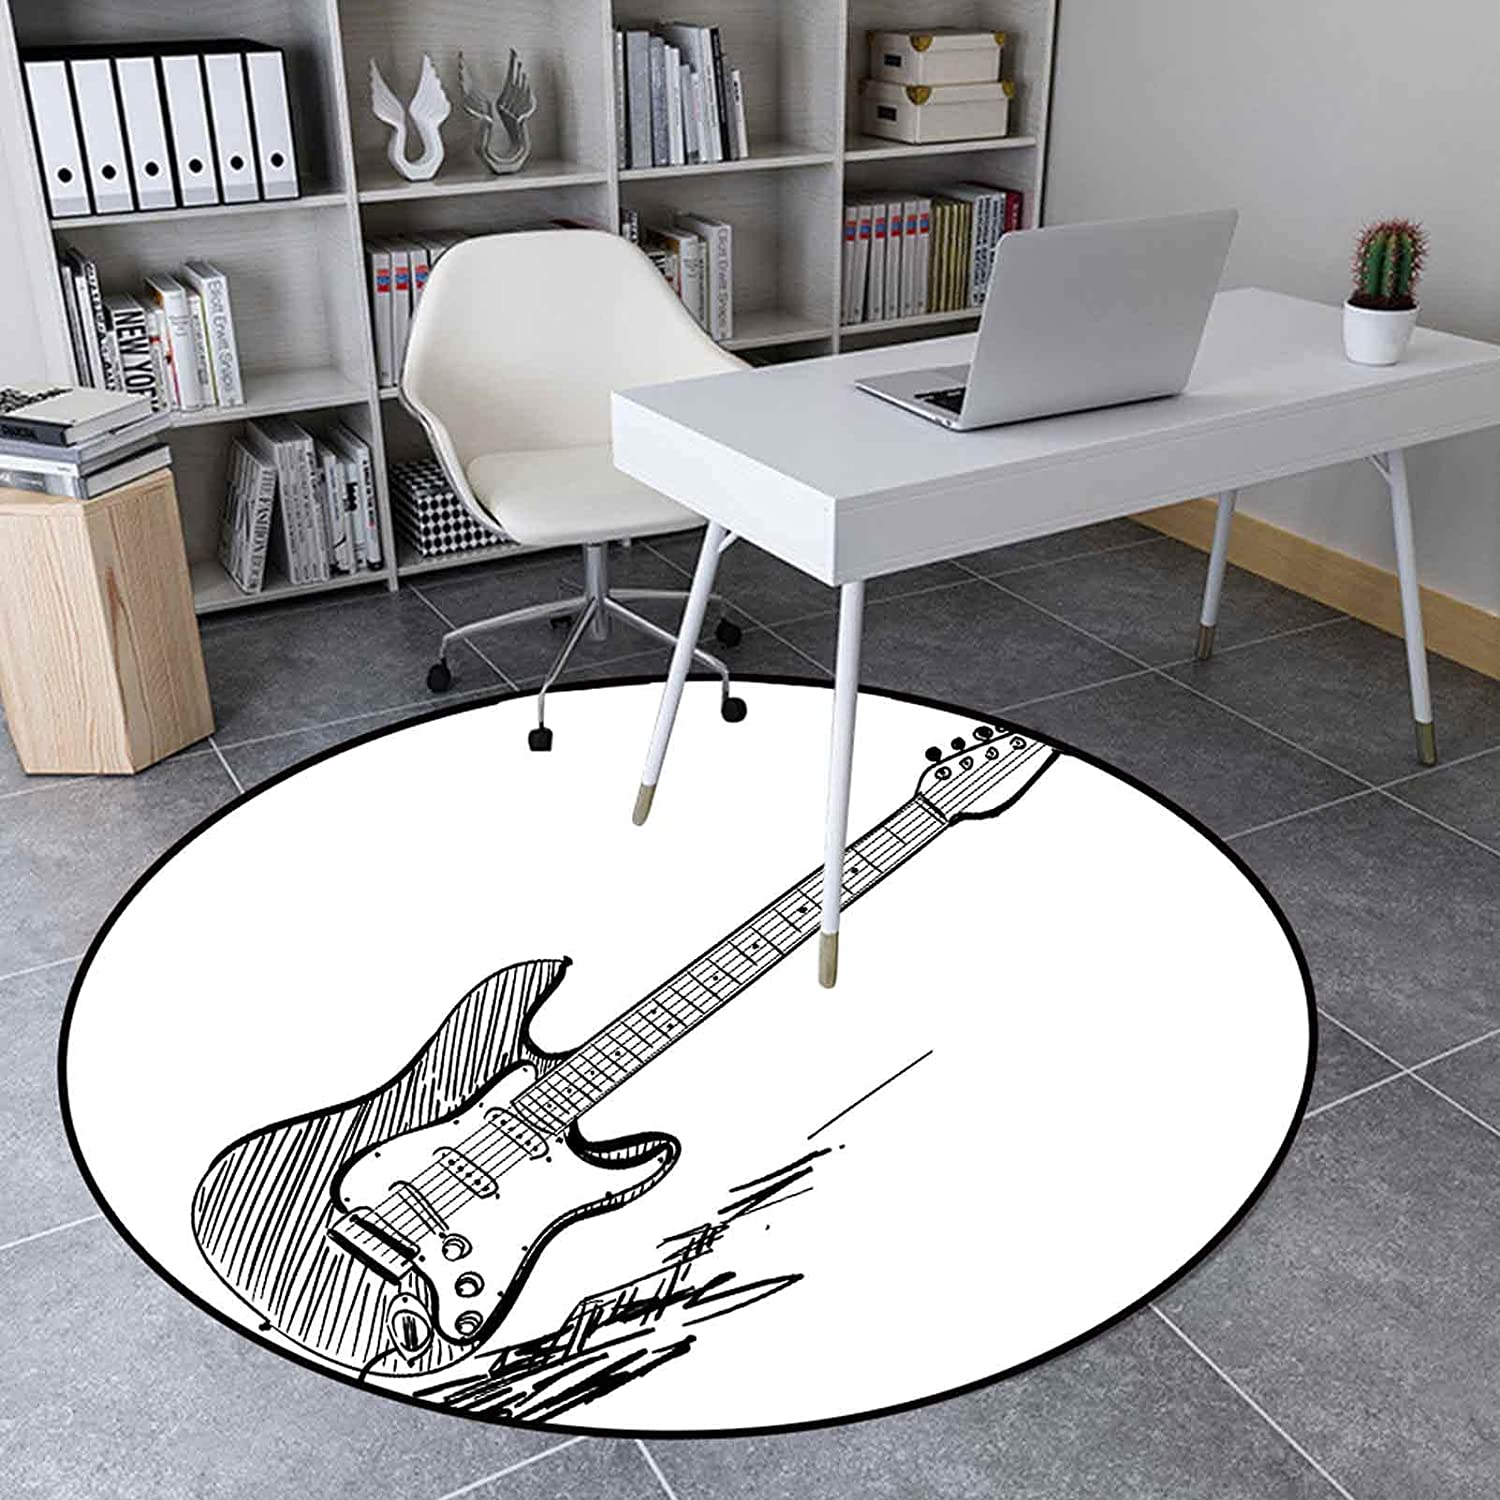 Round Rugs Ranking TOP17 3.9 Ft Soft Floor Mat Home Drawn Decor Style Hand Max 85% OFF El